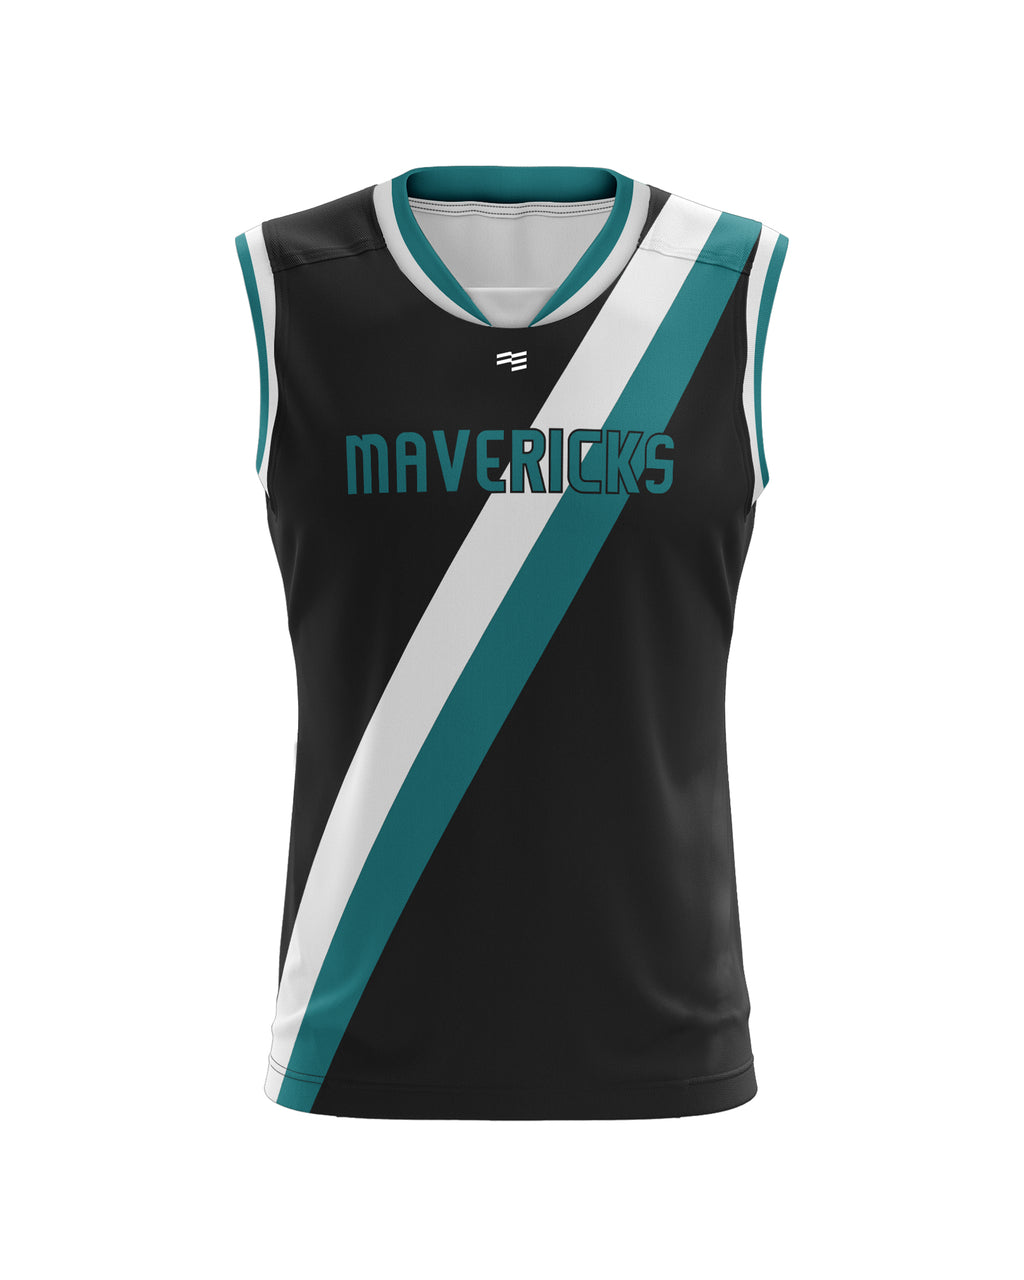 Mavericks Aussie Rules Guernsey - Mens